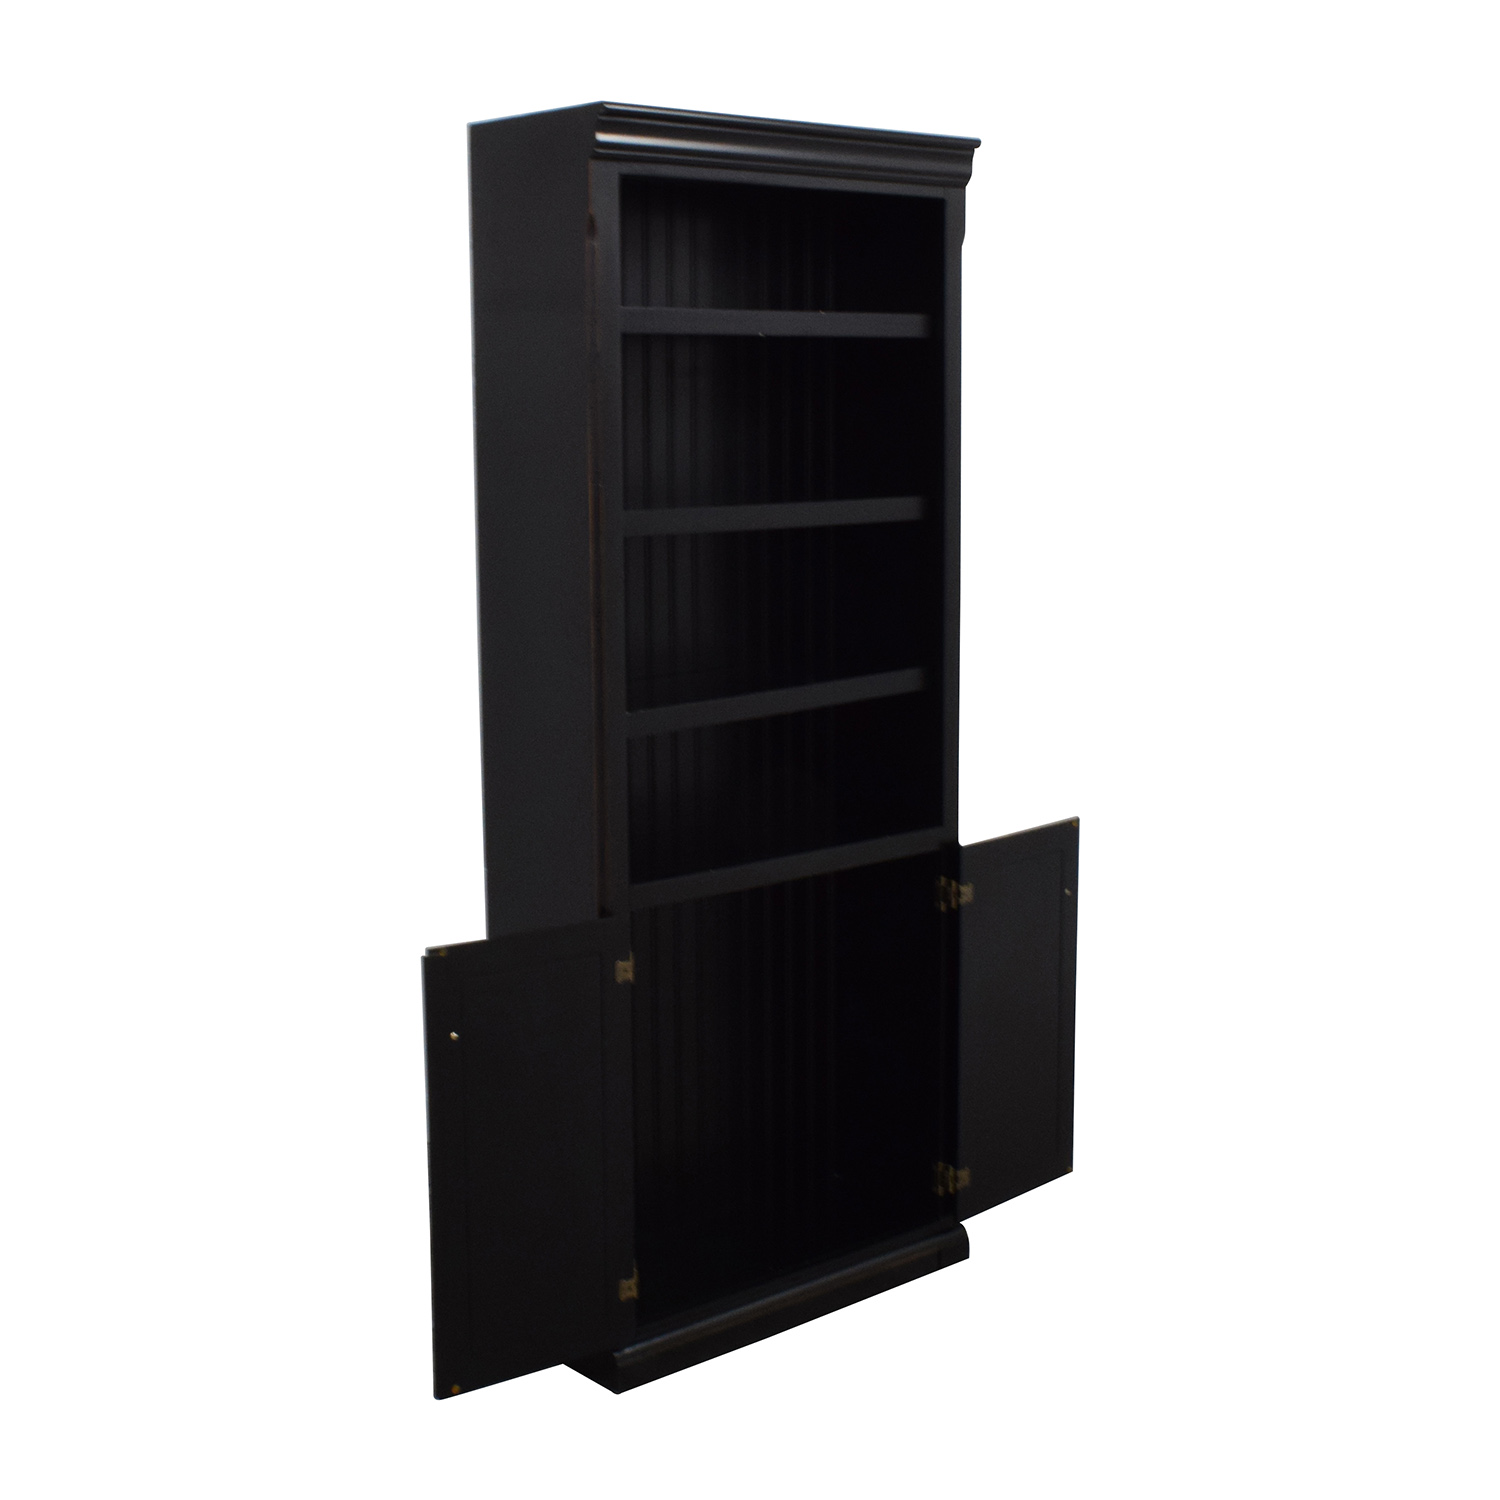 Raymour and Flanigan Raymour & Flanigan Dark Brown Wood Bookcase with Cabinet discount